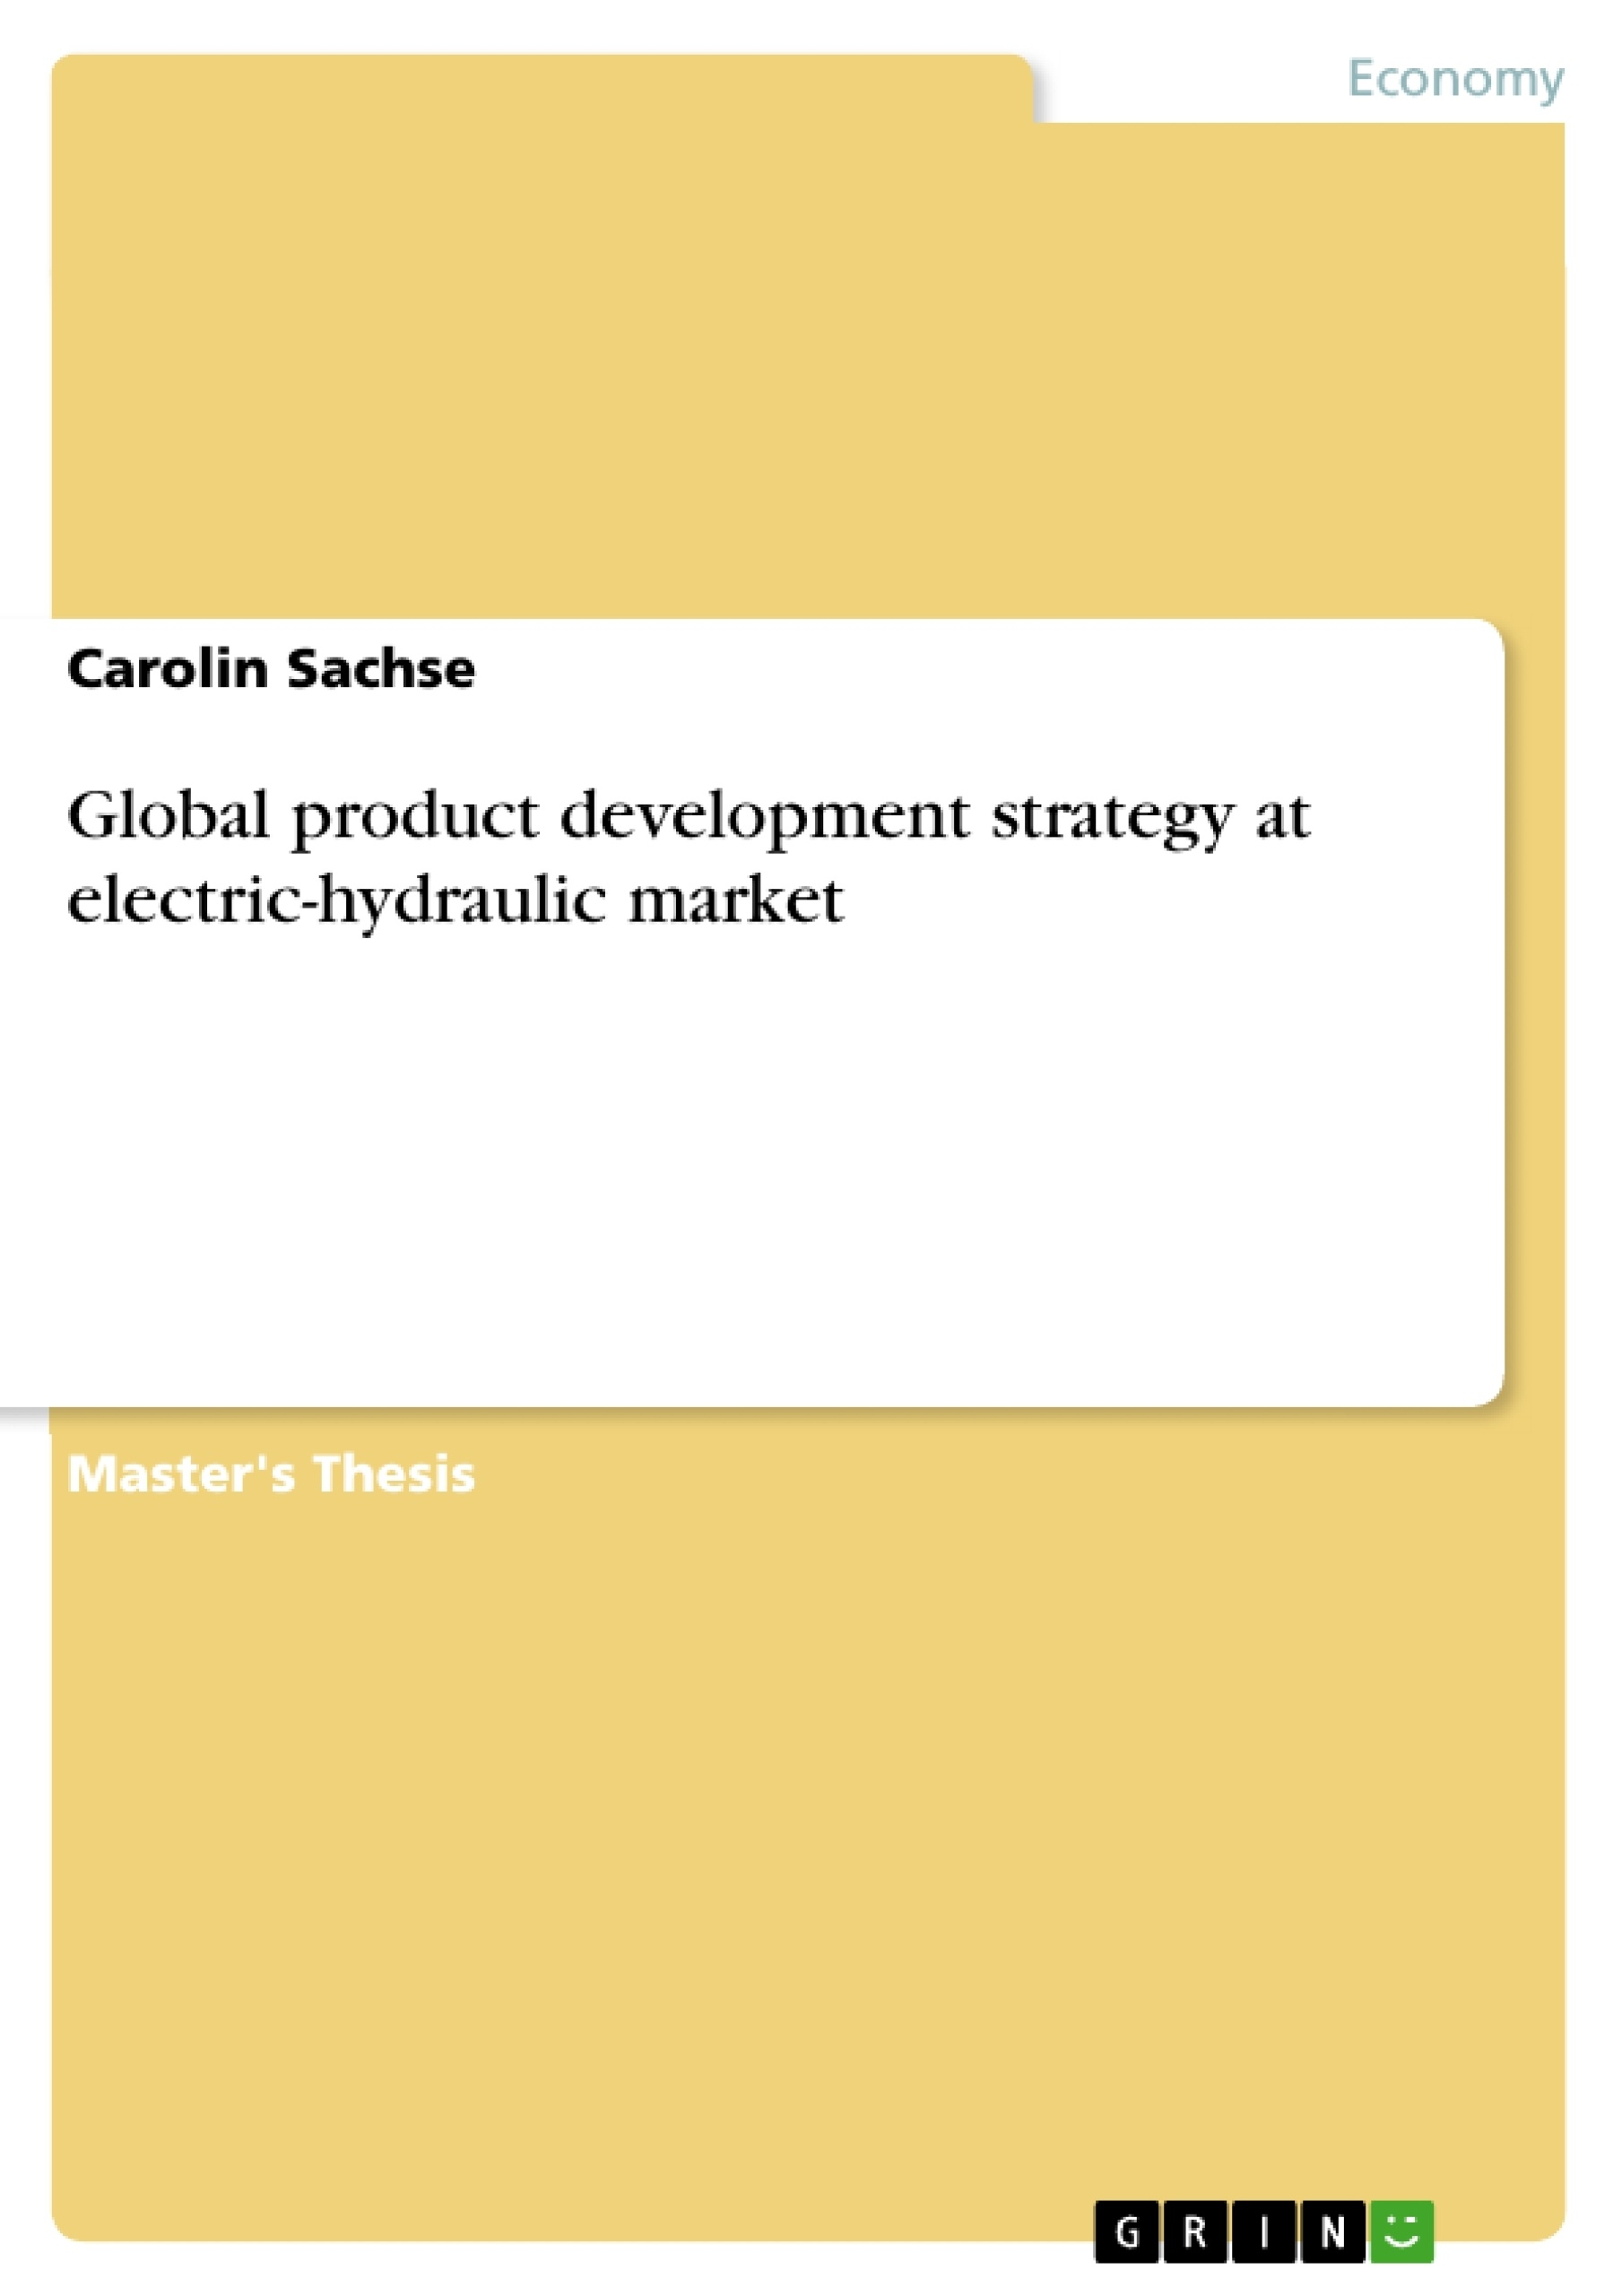 Title: Global product development strategy at electric-hydraulic market